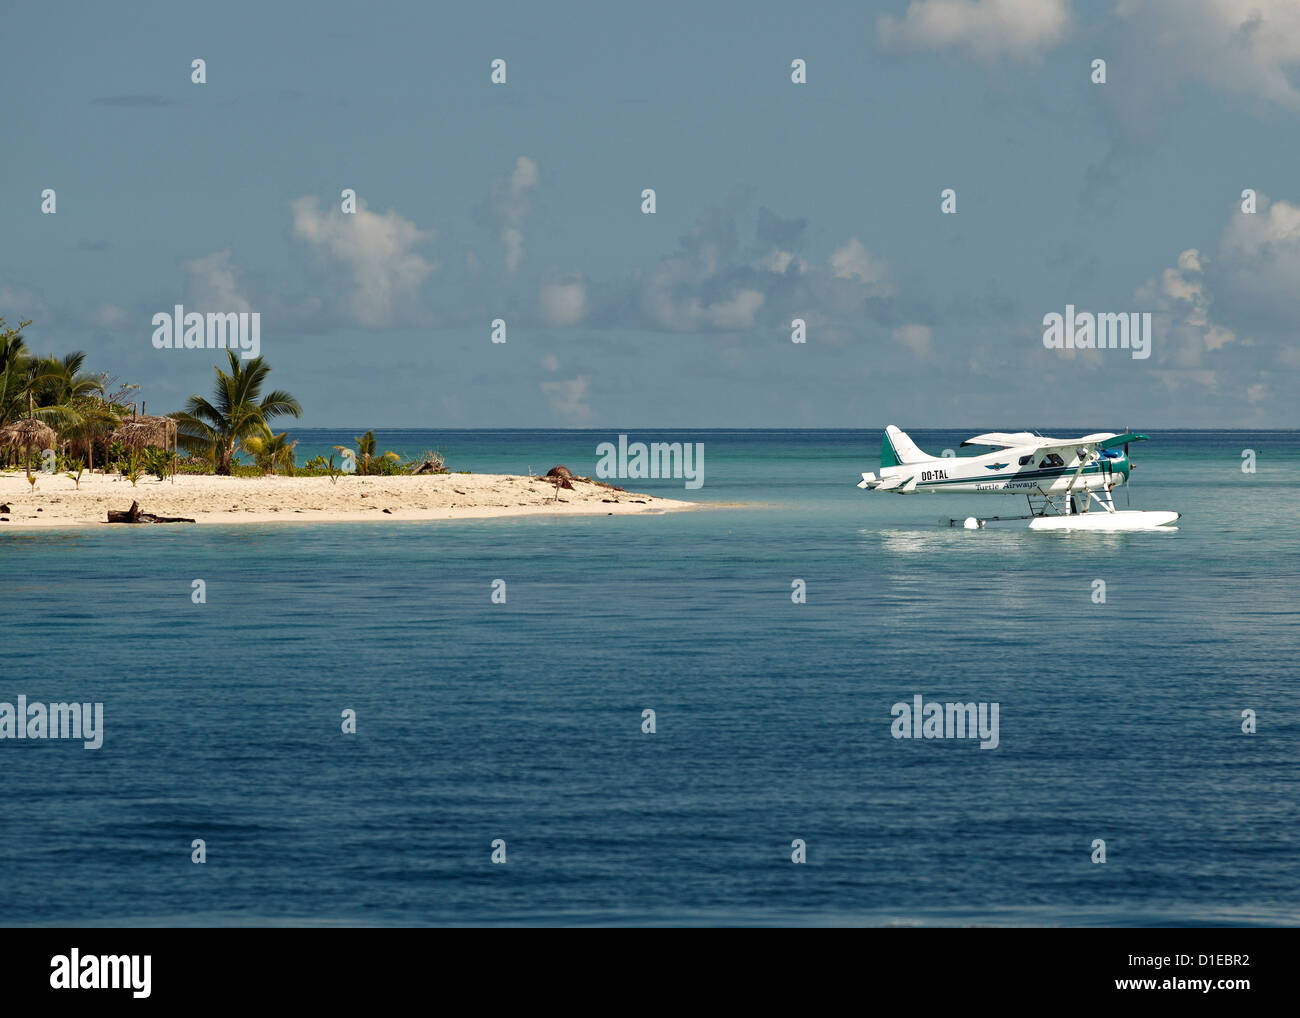 Boat plane off West coast of Viti Levu, Fiji, Pacific Islands, Pacific - Stock Image